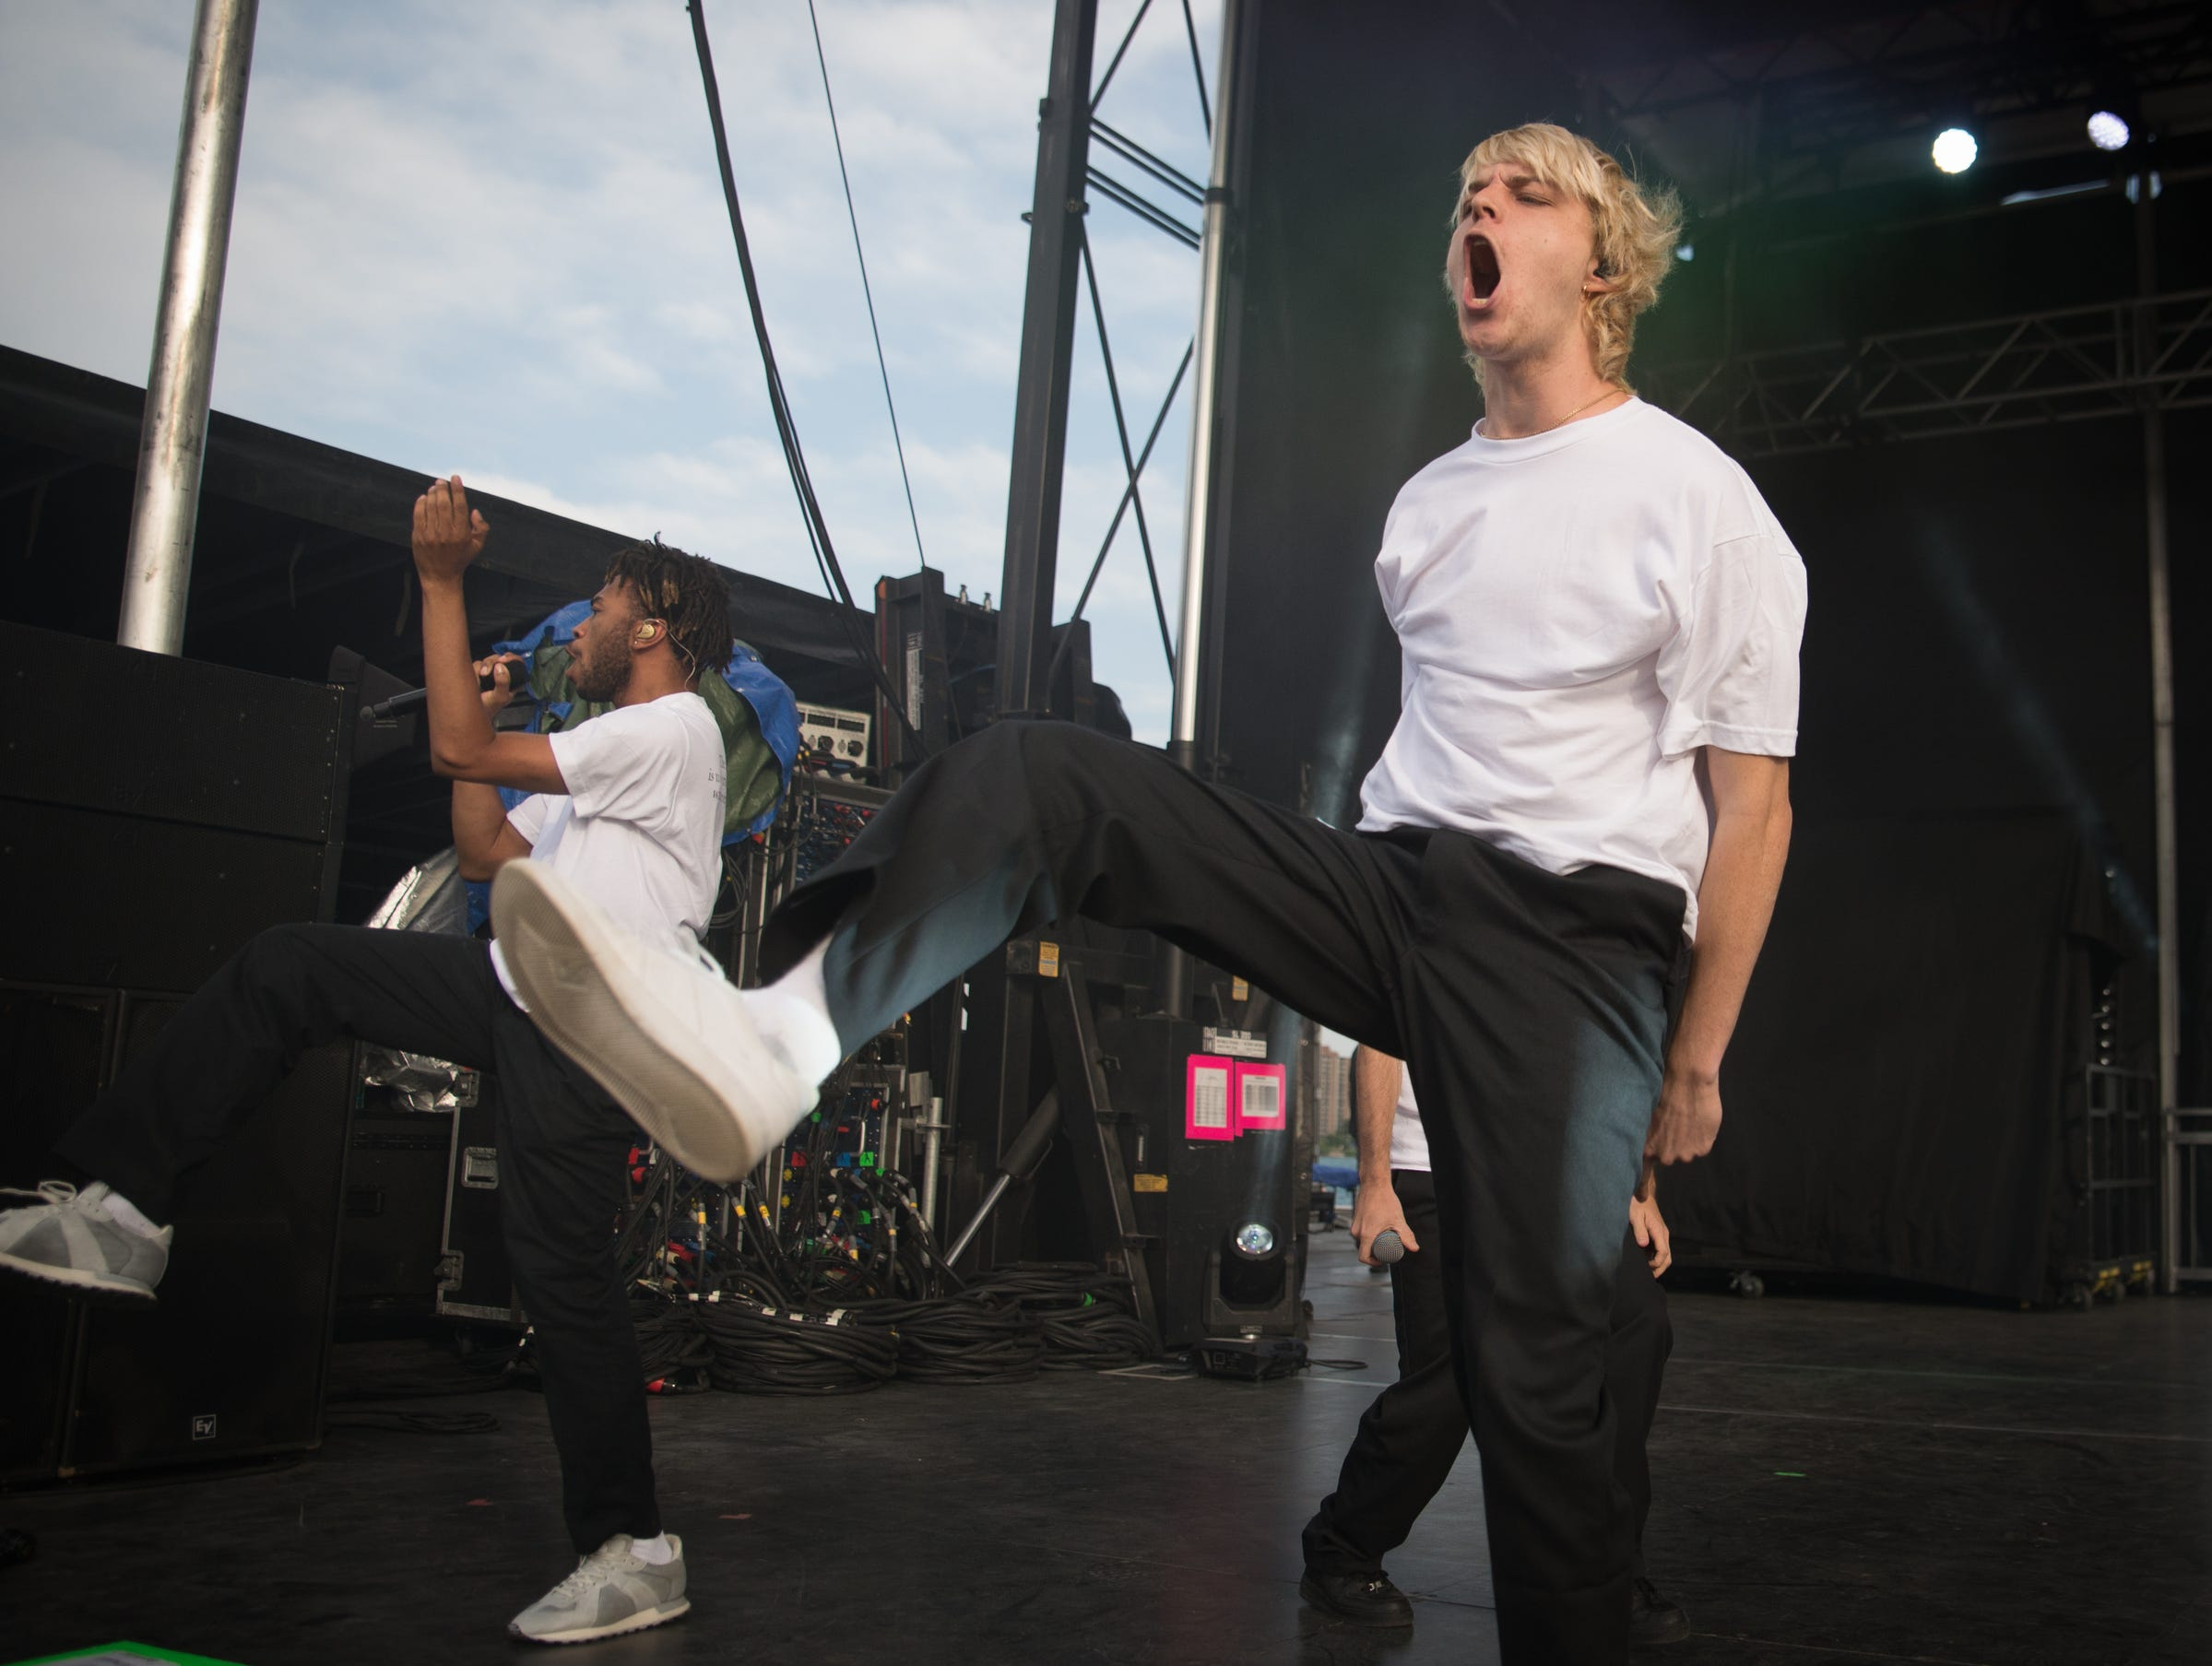 Brockhampton performs during the MoPop music festival in West Riverfront Park in Detroit on July 29, 2018.